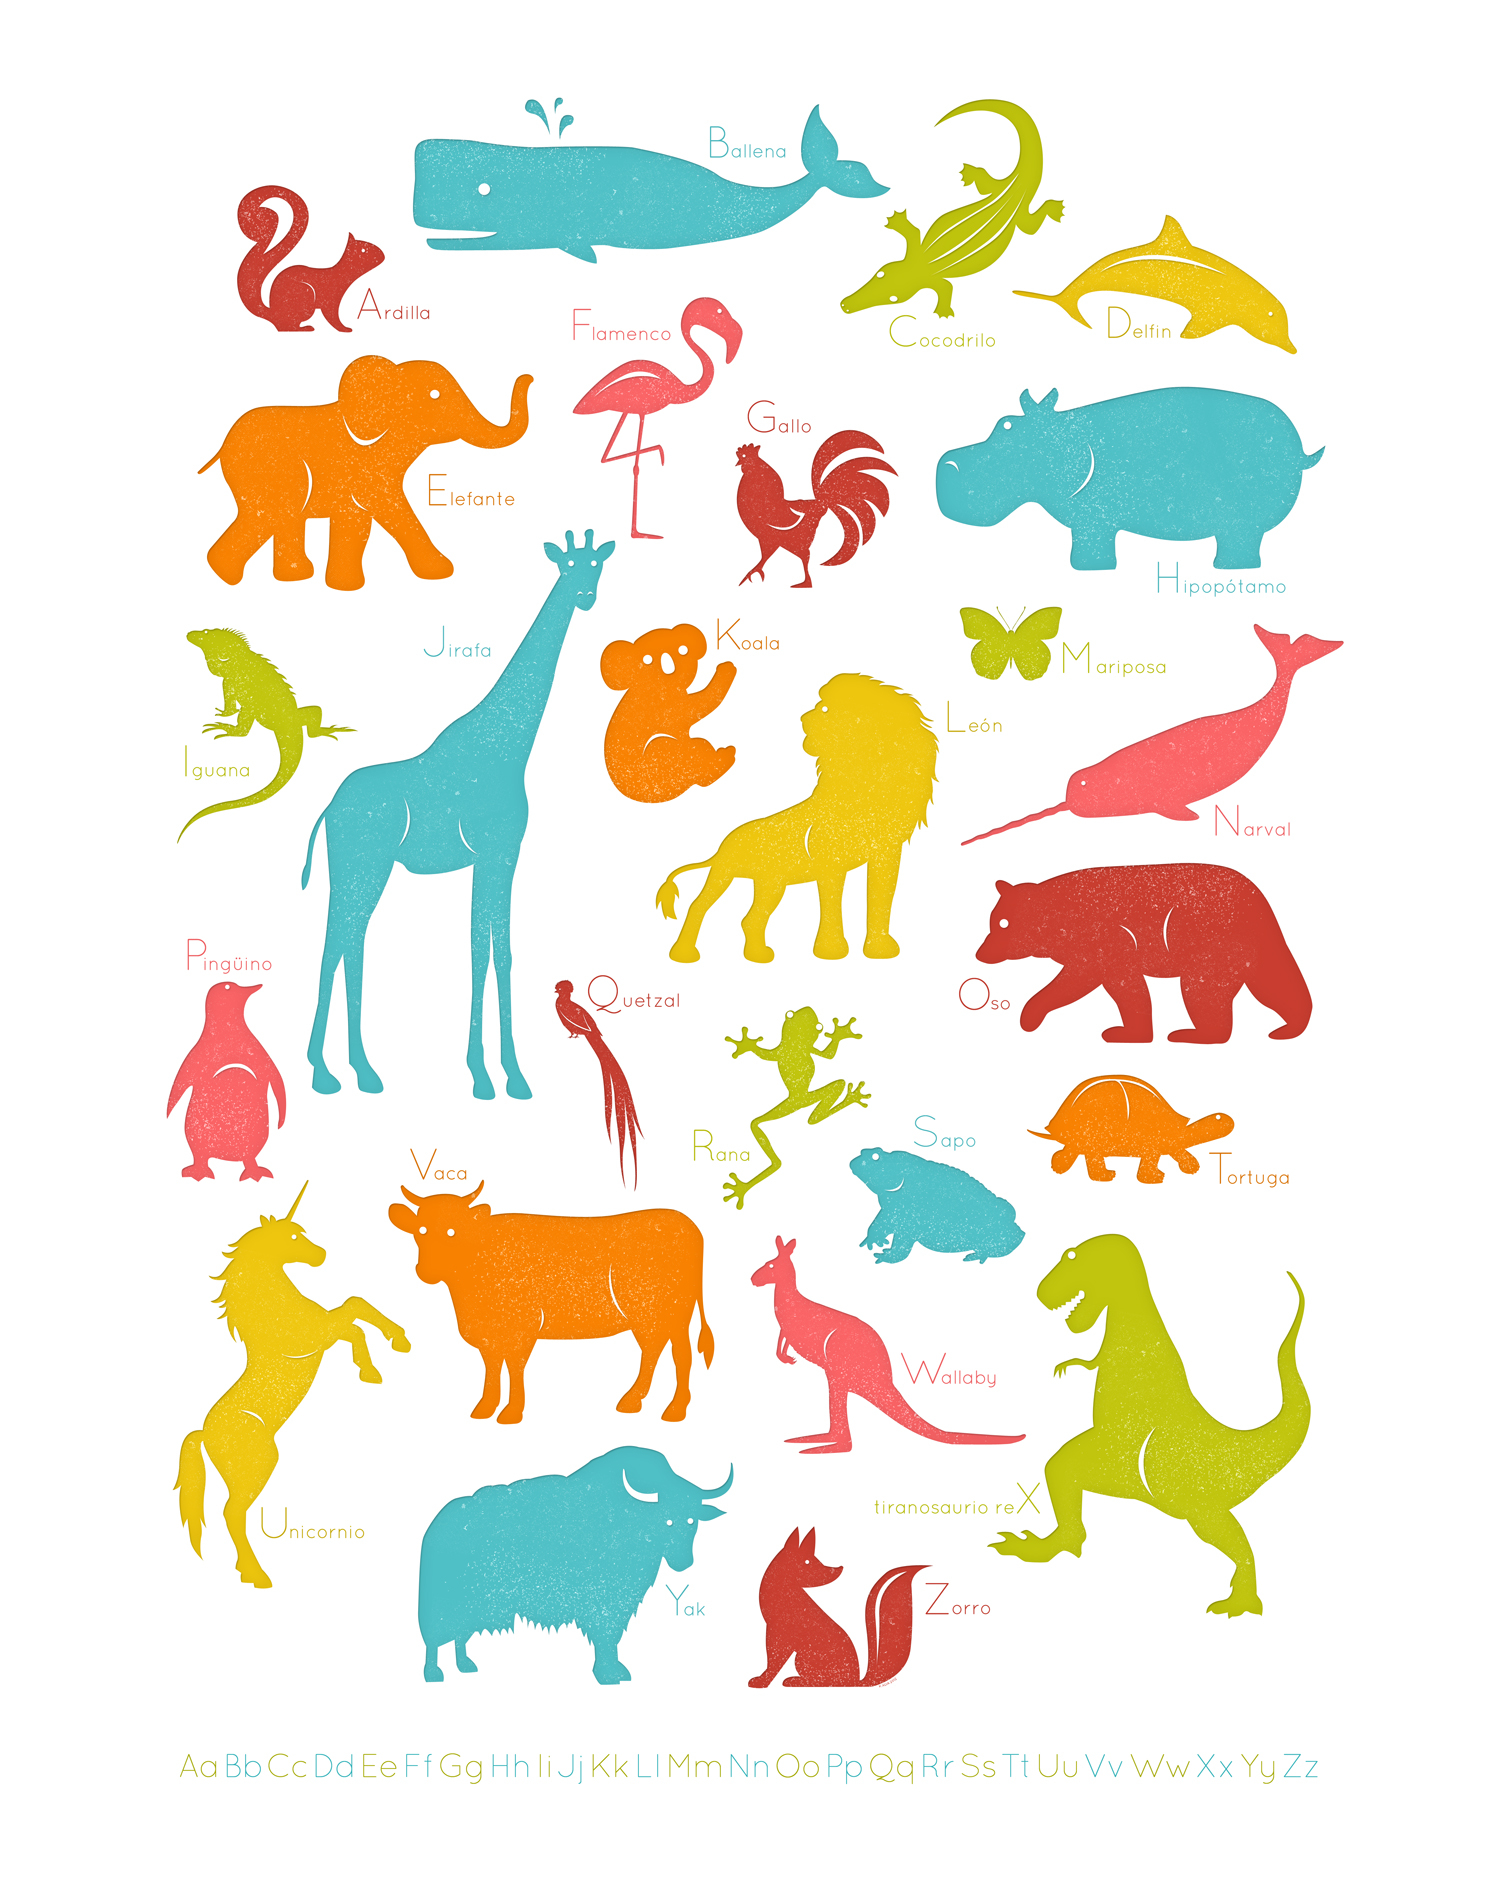 My Spanish Animal Alphabet Poster. Can't wait to print it!.